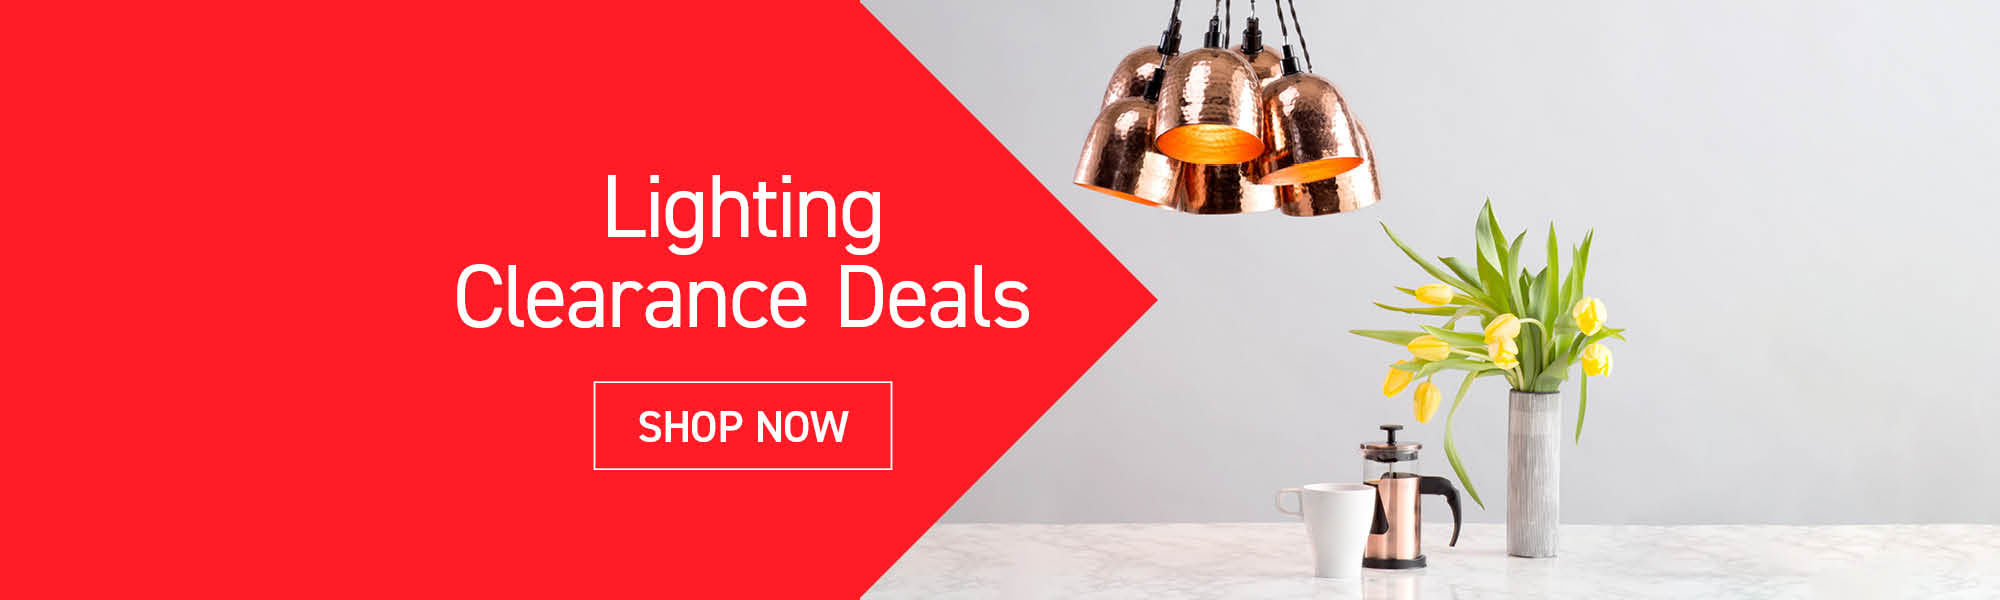 Lighting Clearance Deals